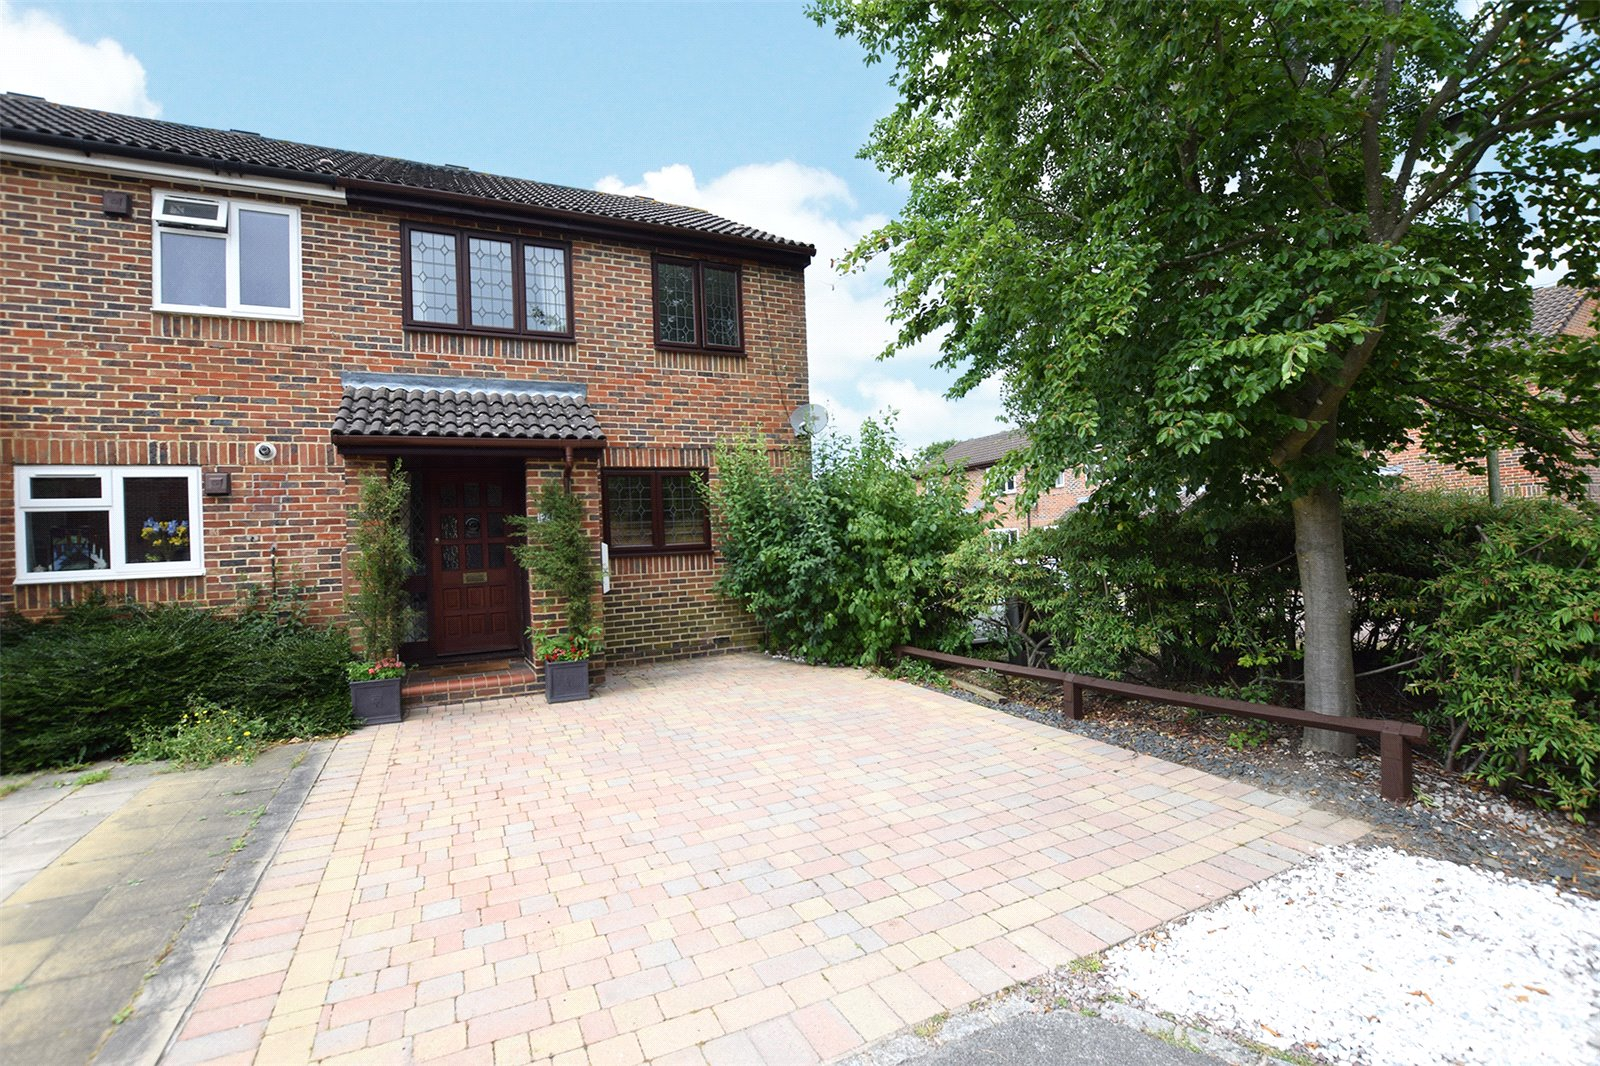 3 Bedrooms End Of Terrace House for sale in Chesterblade Lane, Bracknell, Berkshire, RG12